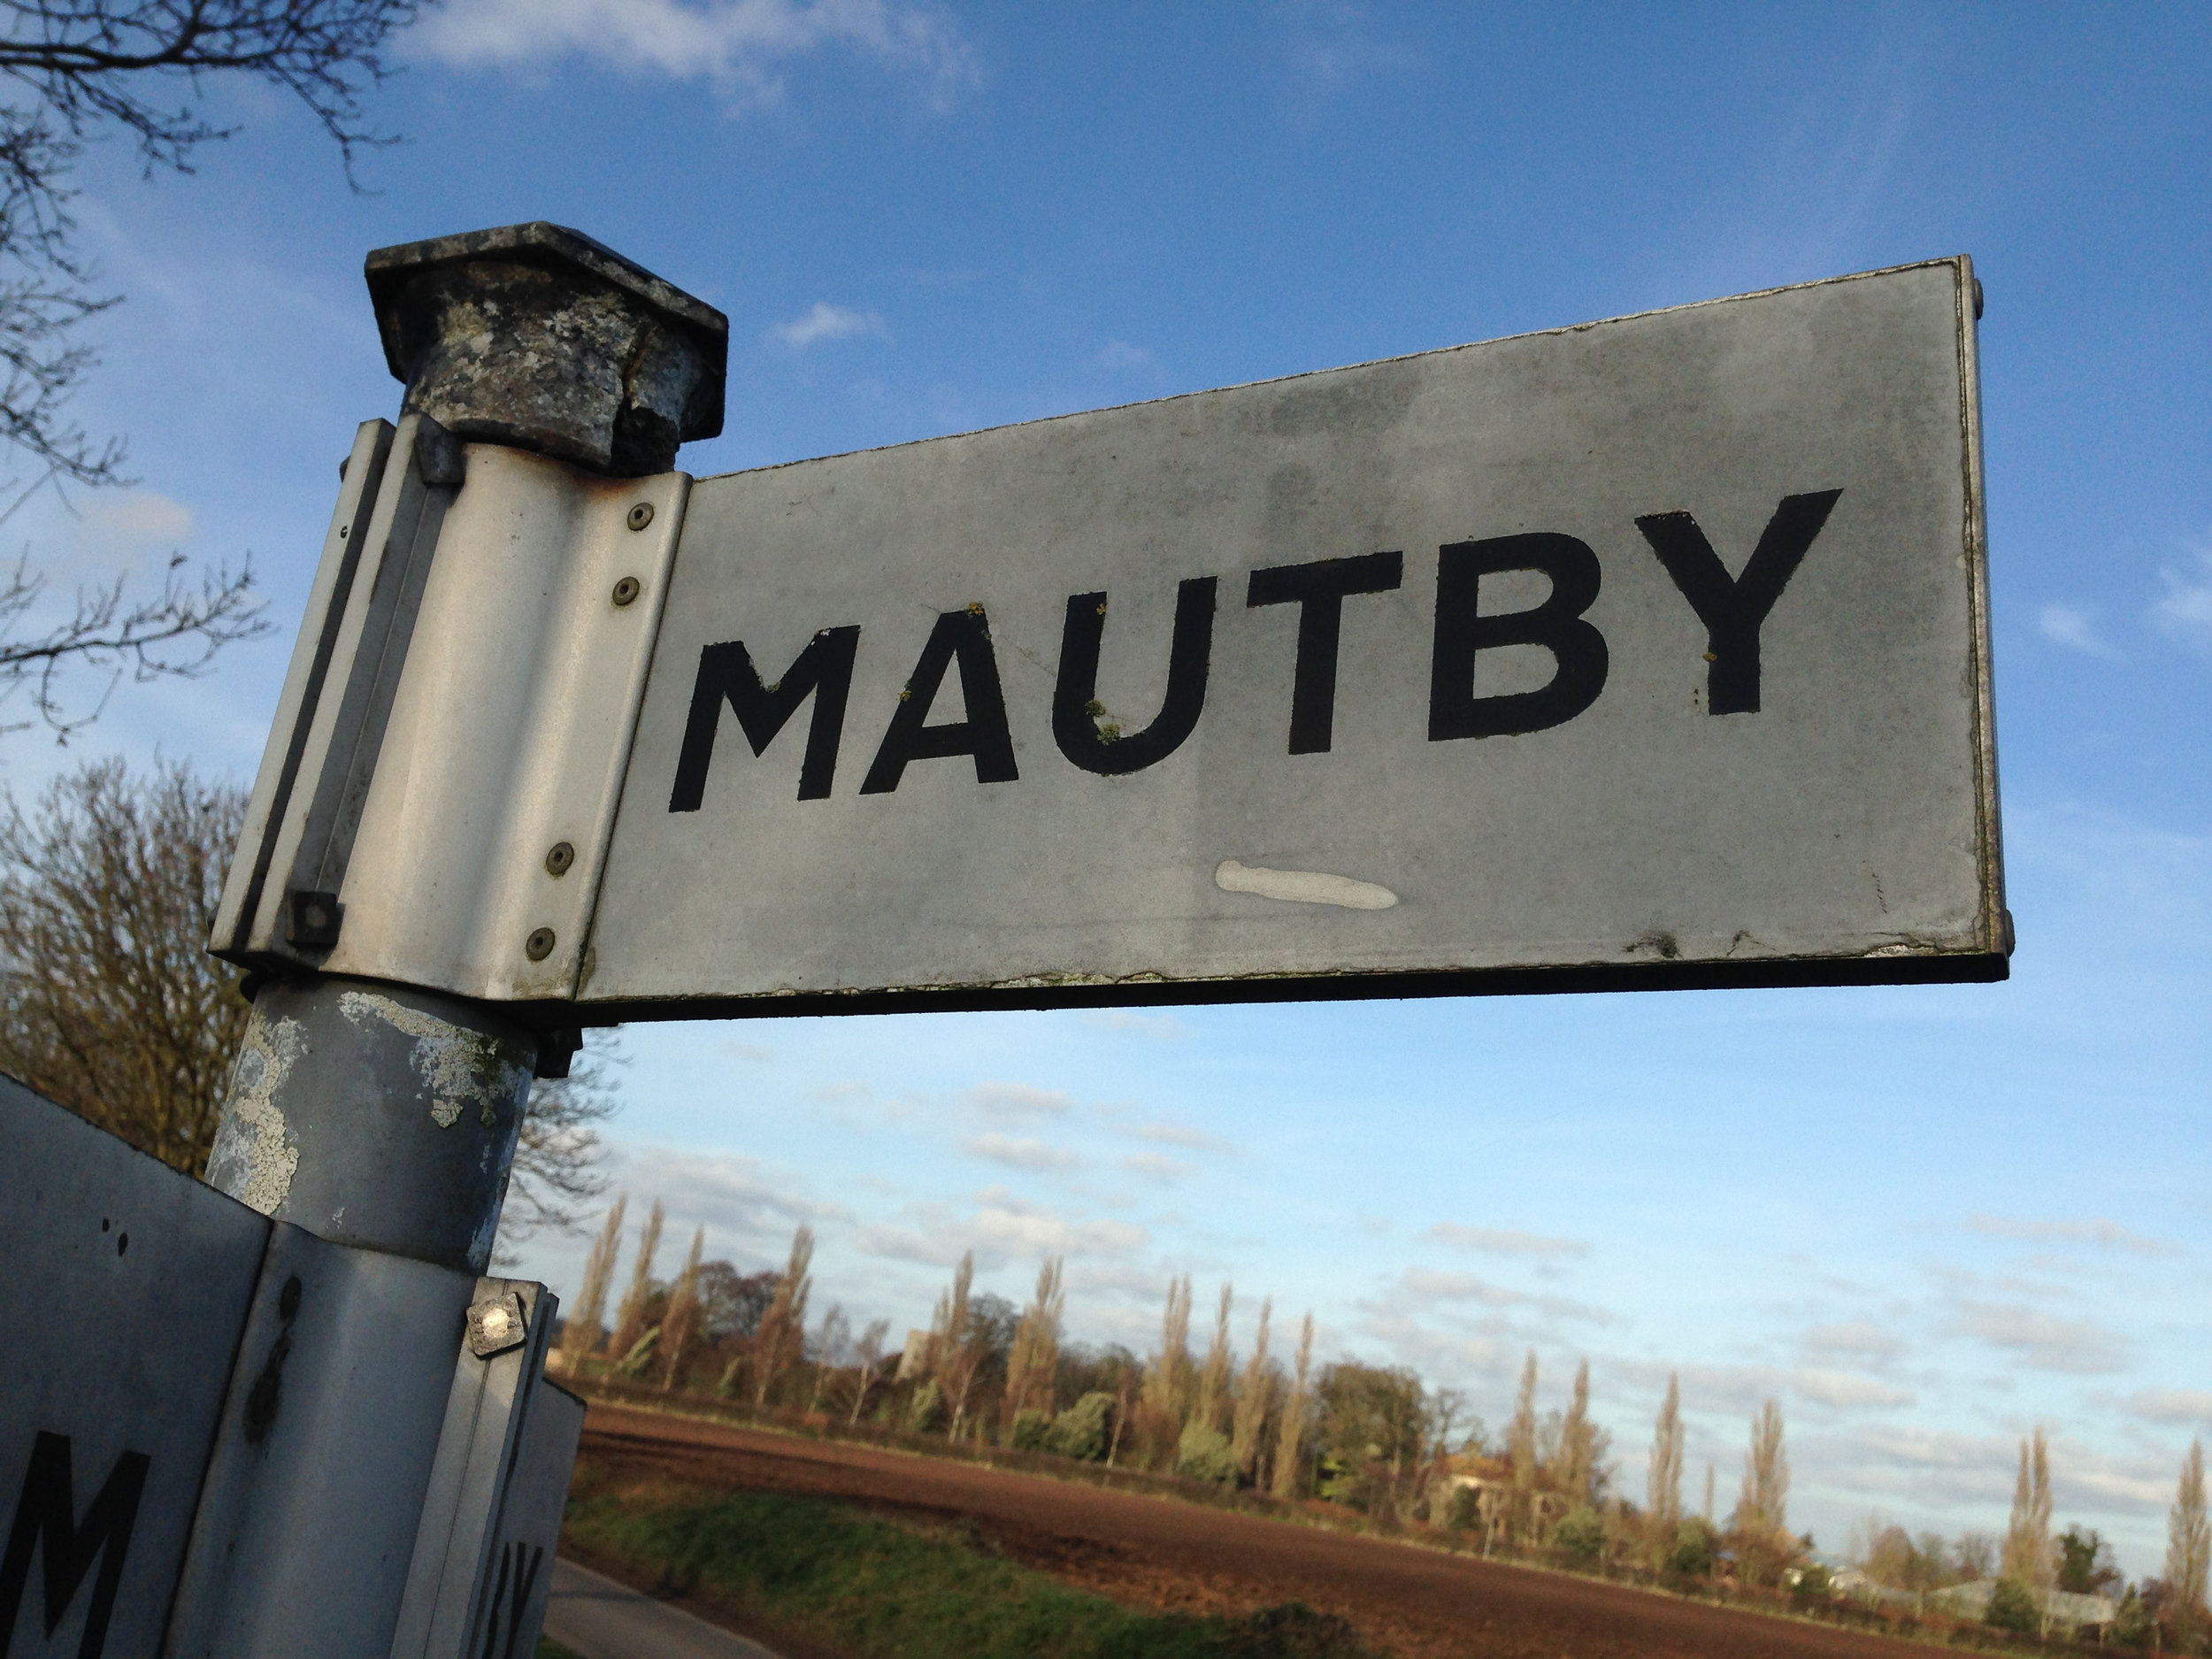 Mautby sign